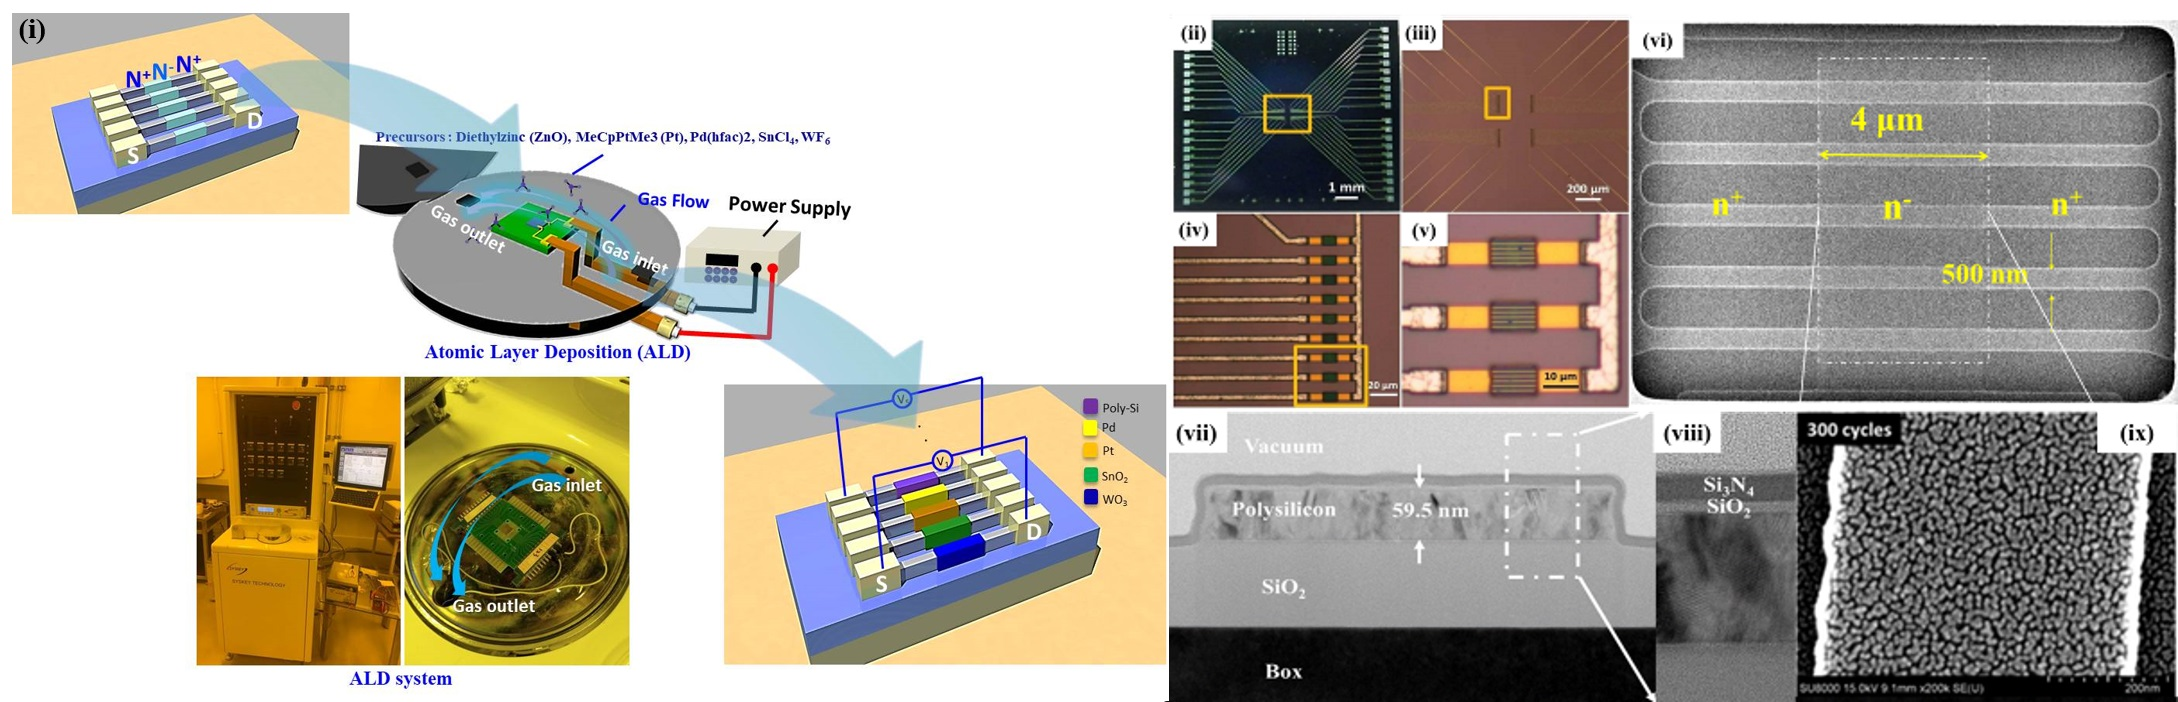 Intelligent E-nose with Joule Self-heating Nanodevice Array